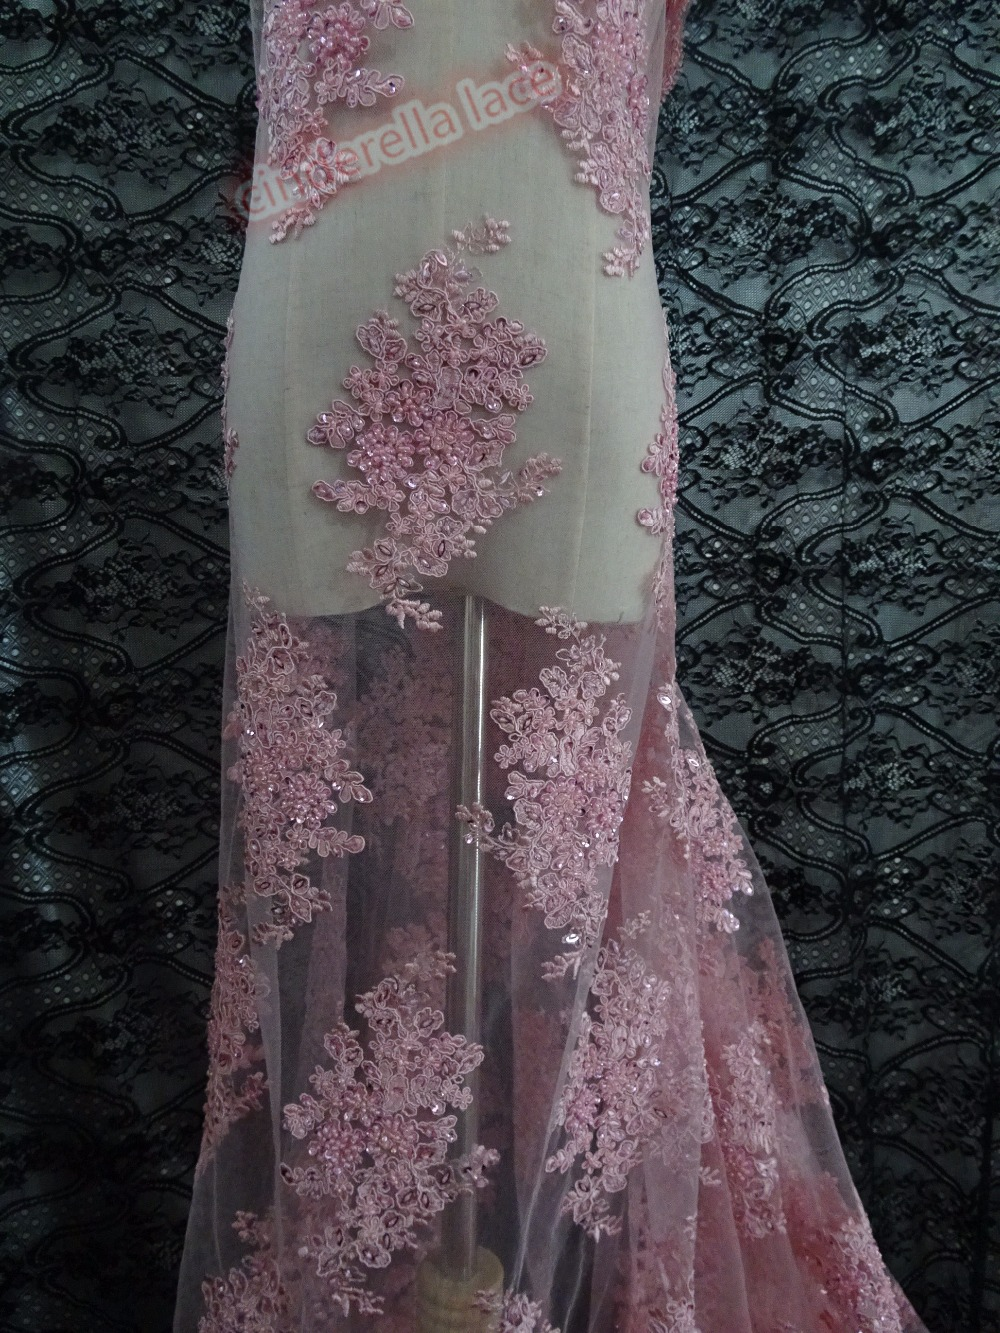 New beaded embroidery lace mesh baby pink african net fabric for evening dress/party dress for bridal dress-in Lace from Home & Garden    1